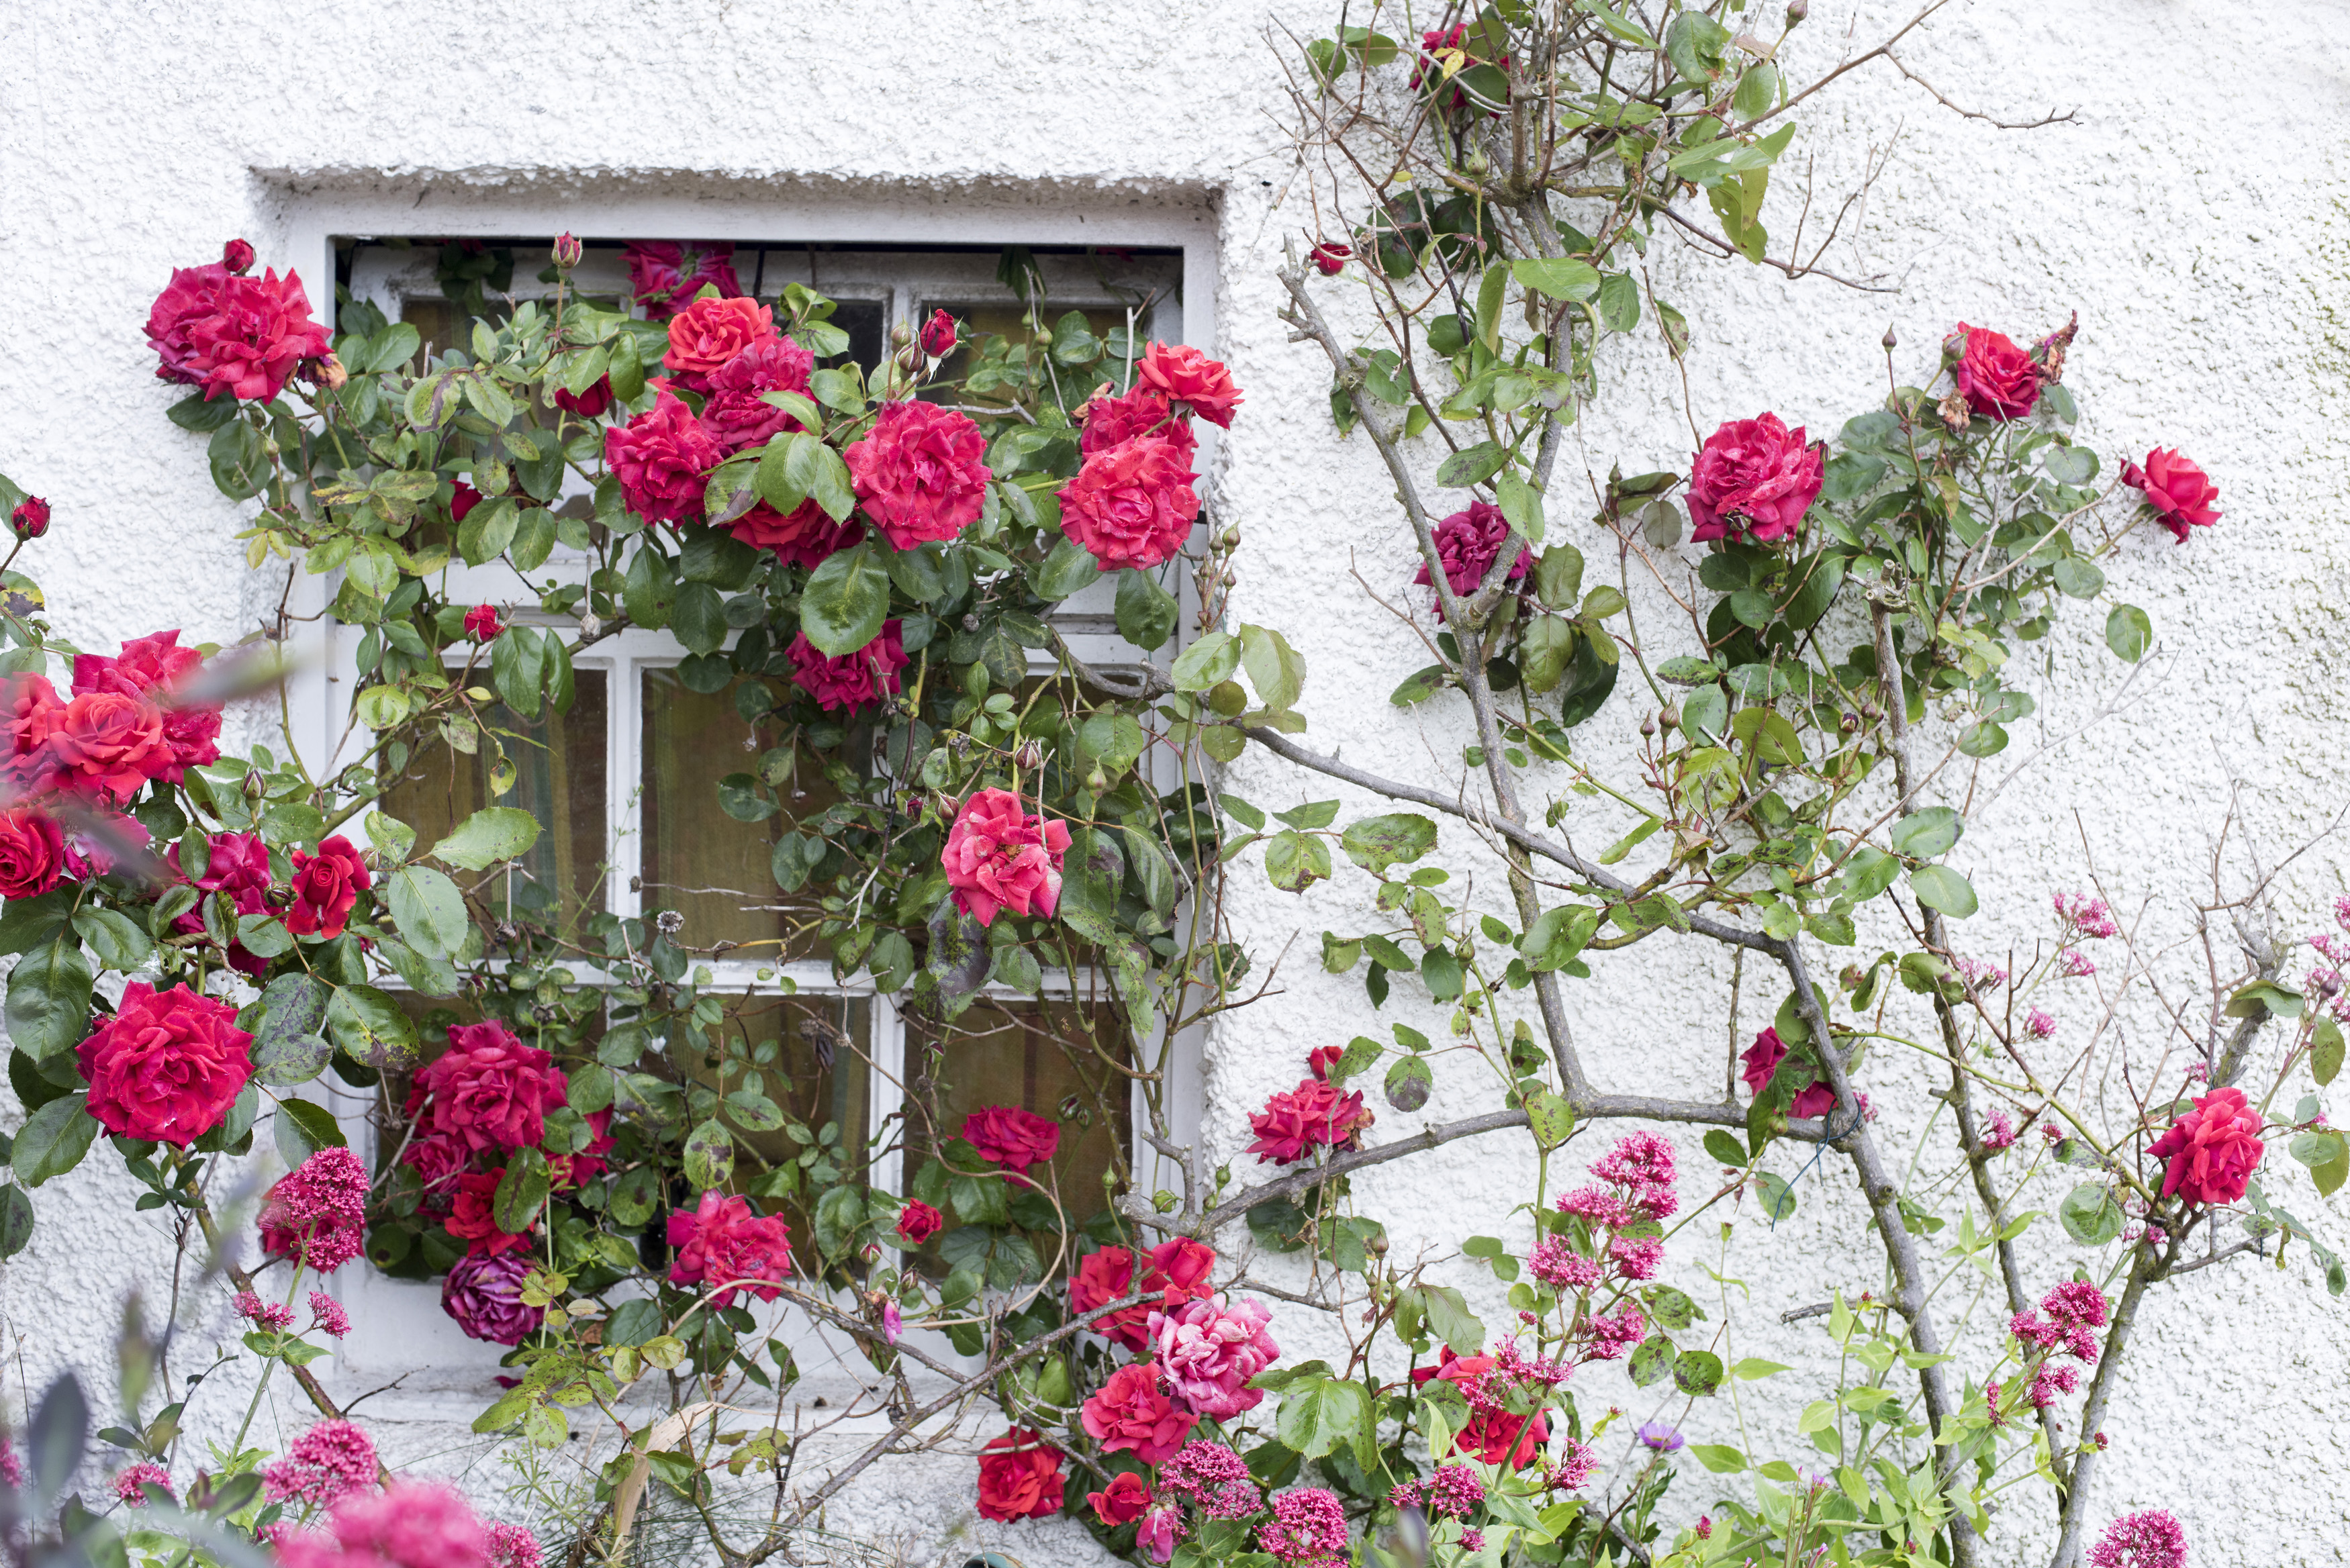 Free Image Of Scenic View Of Tall Rose Bush With Pink Flowers